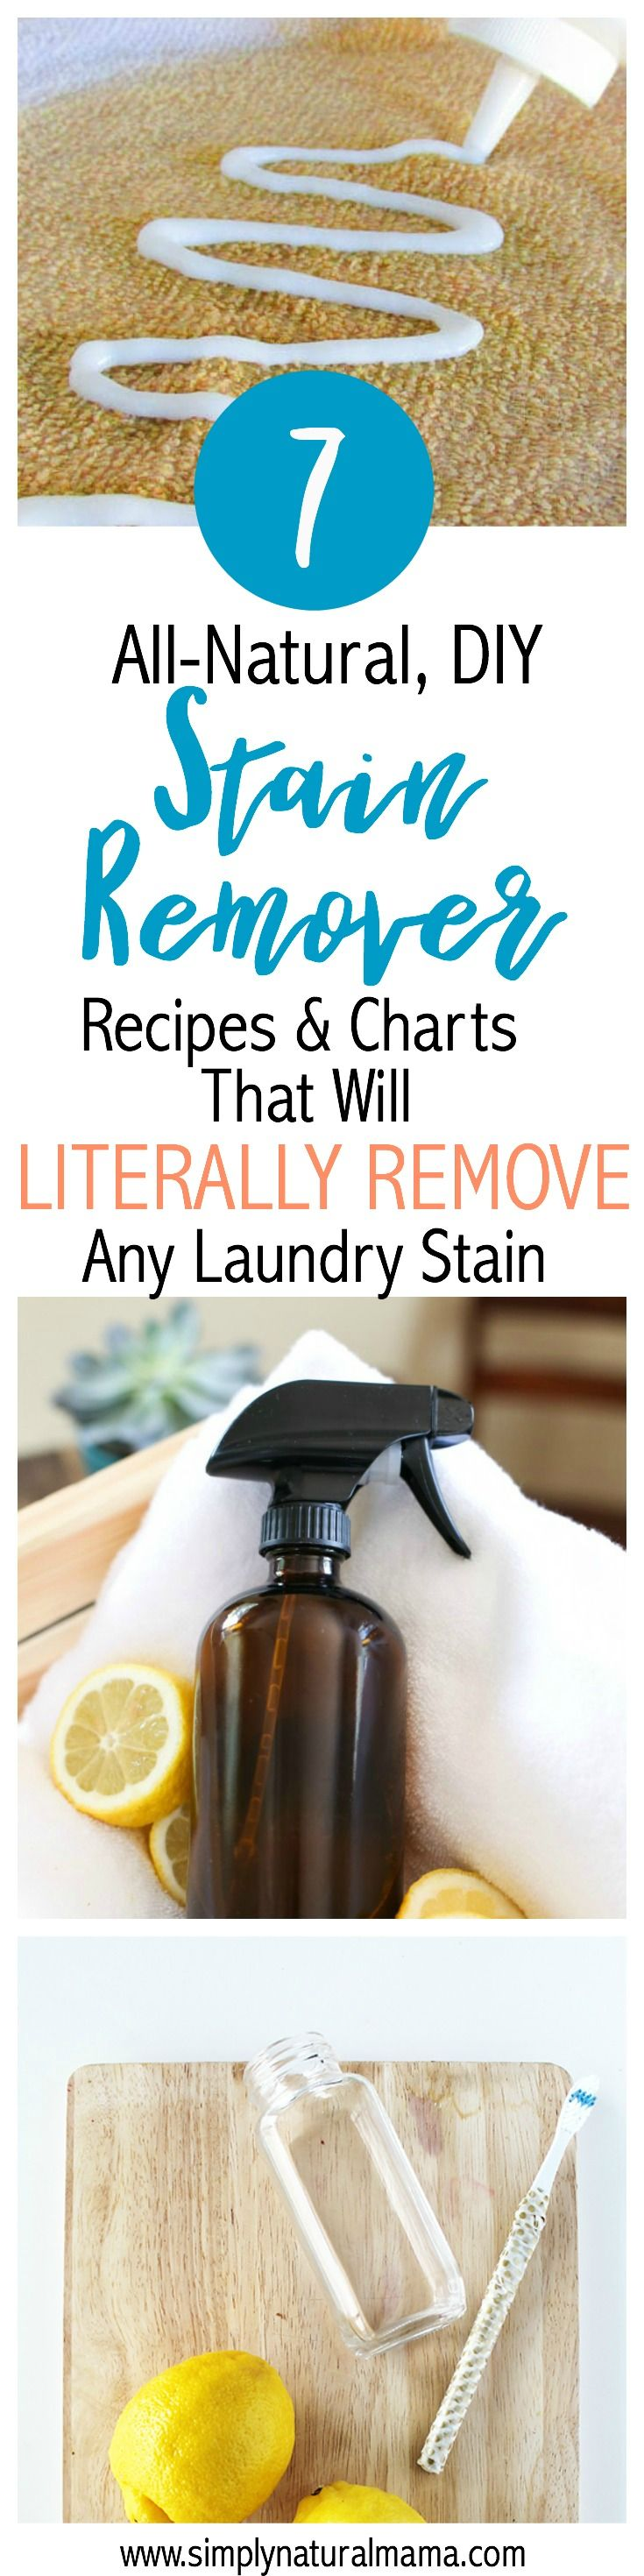 AllNatural DIY Stain Remover Recipes and Charts That Will